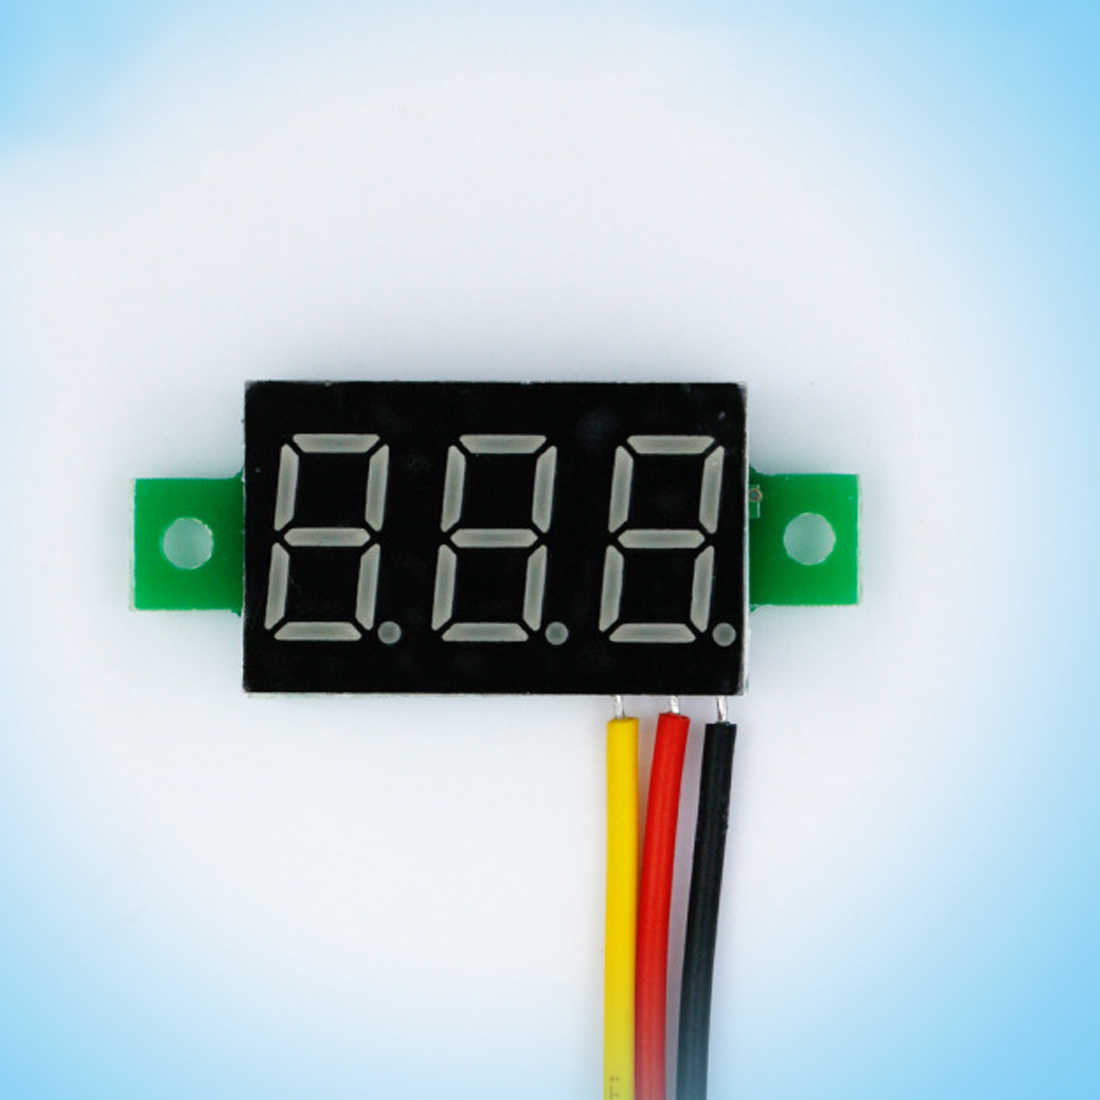 1PC Mini 0.36 inch DC 0-100v 3 bits Digital Red LED Display Panel Voltage Meter Voltmeter Tester Digital Ammeter Voltmeter